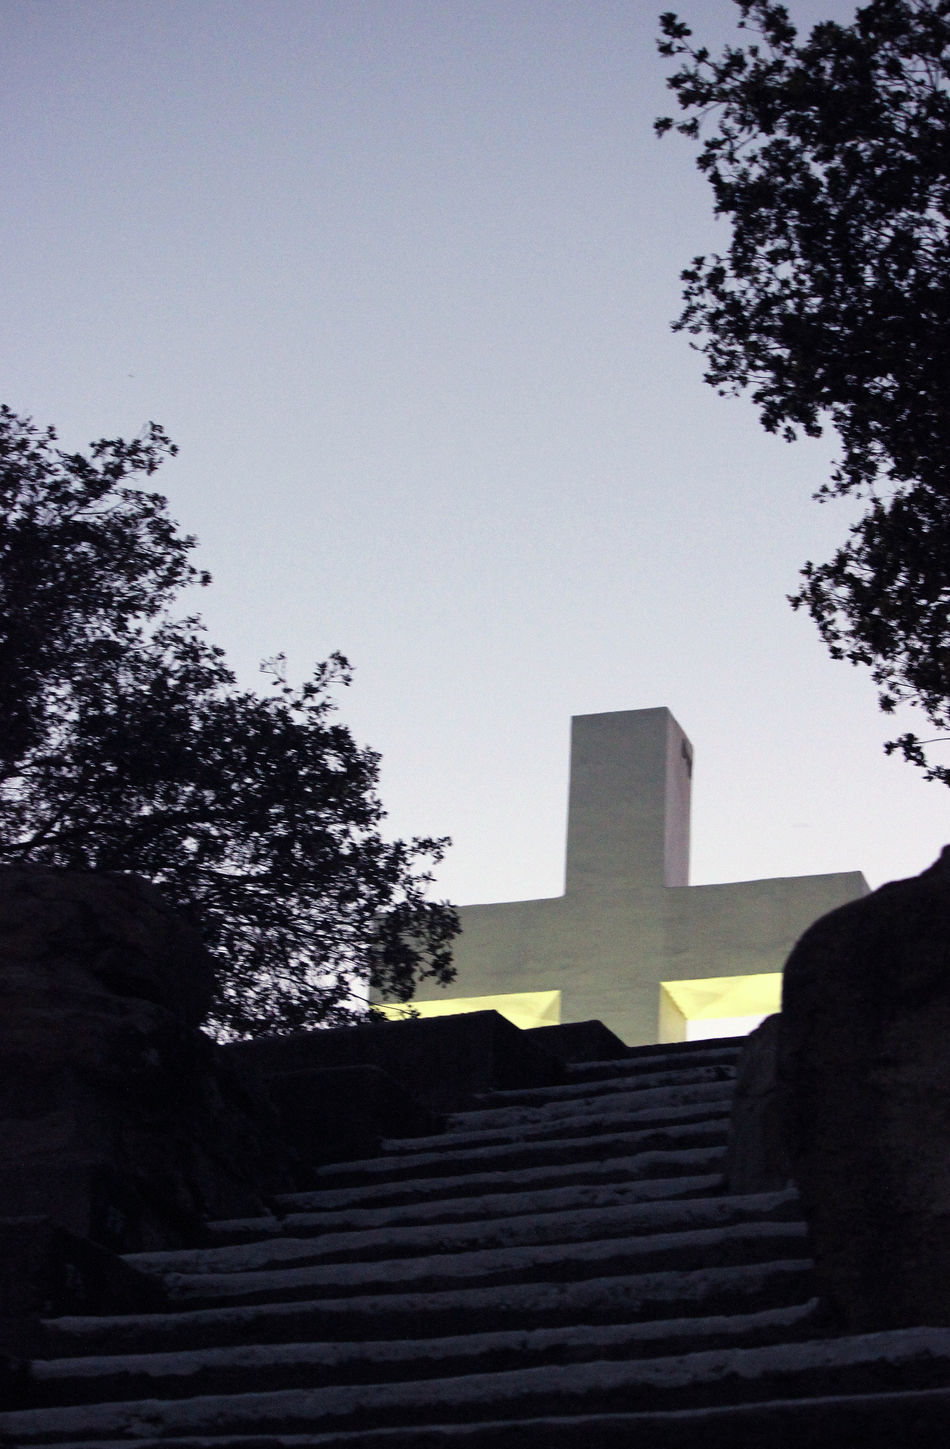 Architecture Backlit Clear Sky Cross Cross And The Trees Cross At Dusk Cross On The Mountain Stairway And The Cross Stairway To Heaven Easter Ready